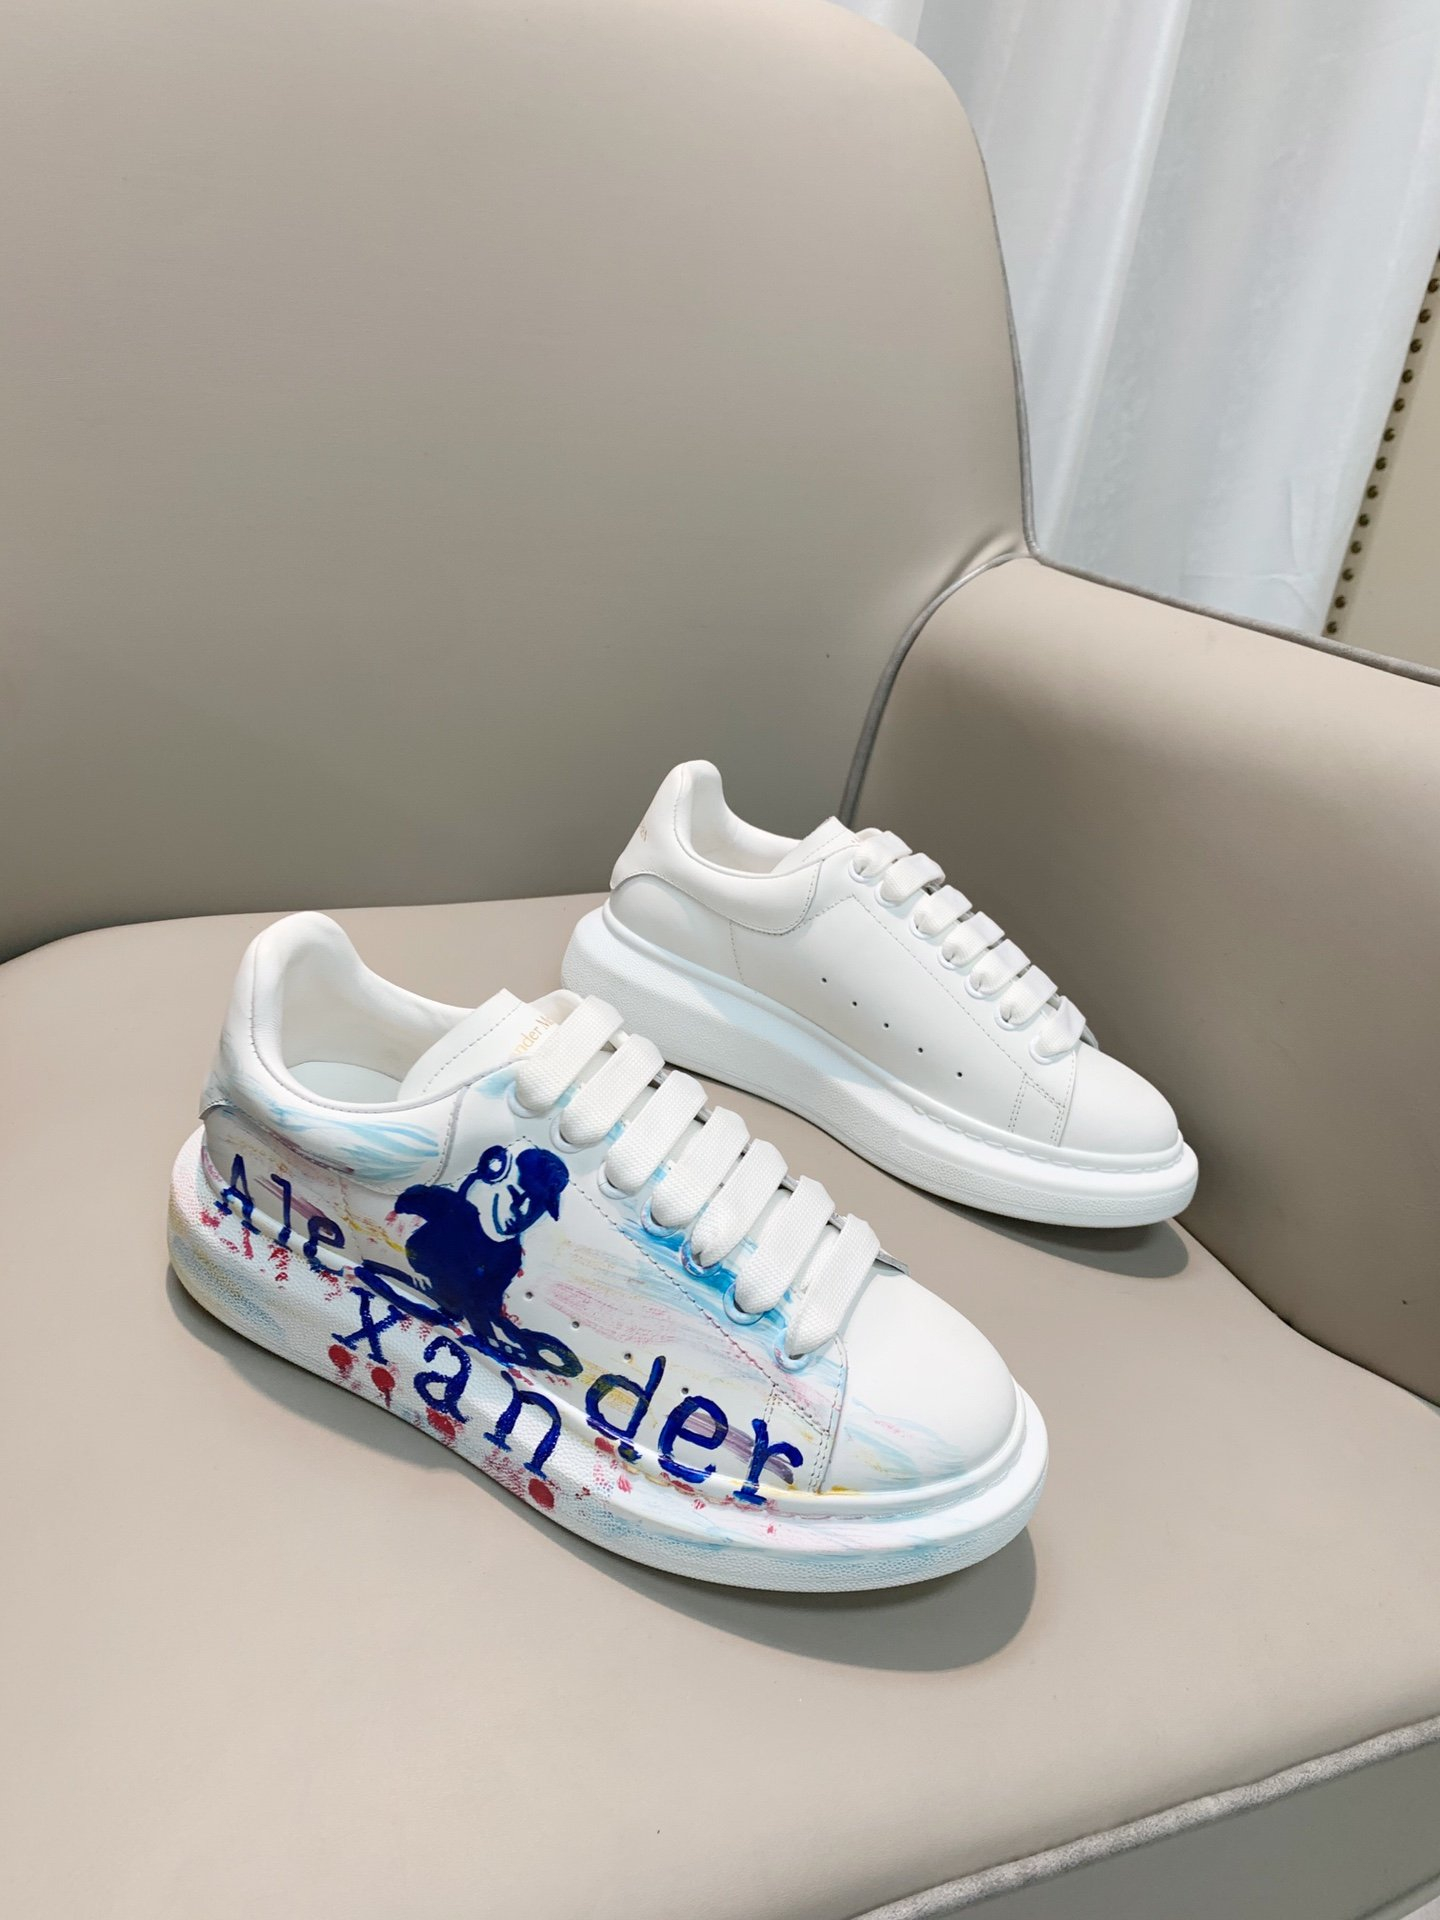 Image of Alexander McQueen2021 Woman's Men's 2020 New Fashion Casual Shoes Sneaker Sport Running Shoes06040em